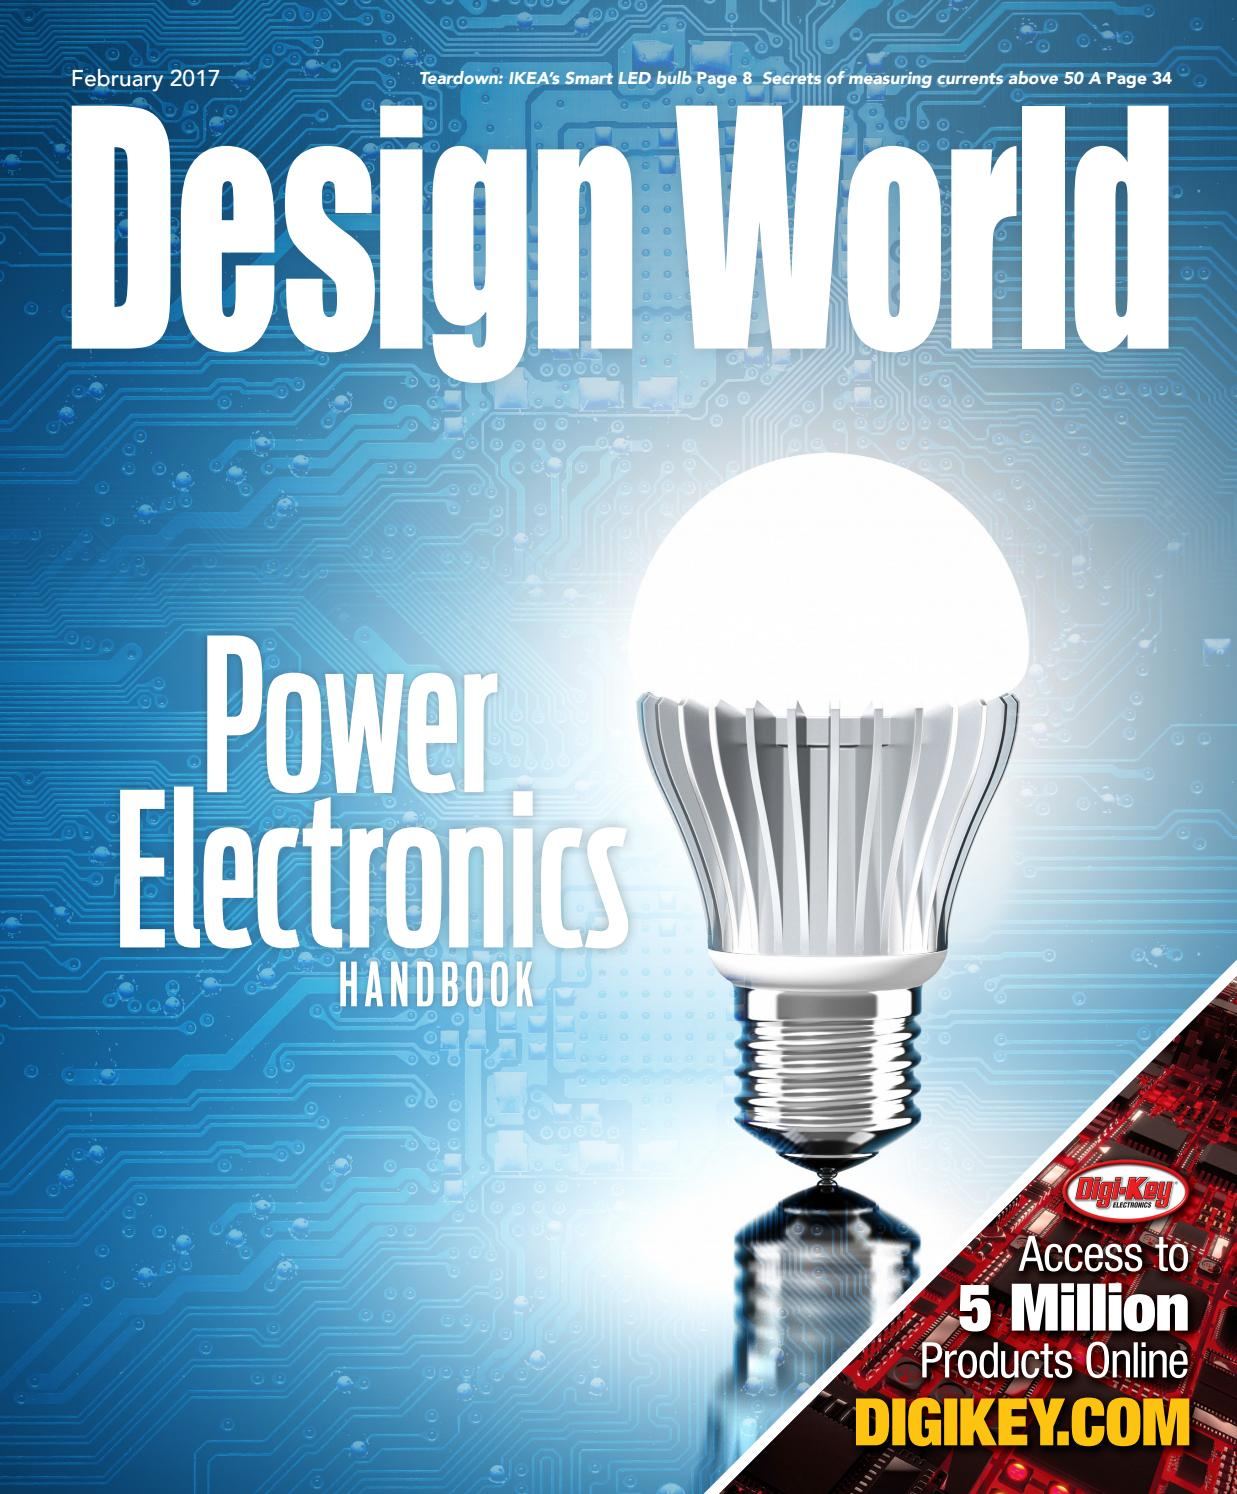 Power Electronics Handbook February 2017 By Wtwh Media Llc Issuu The Main Limitation In Circuit Simulation Digichip Is That You Can